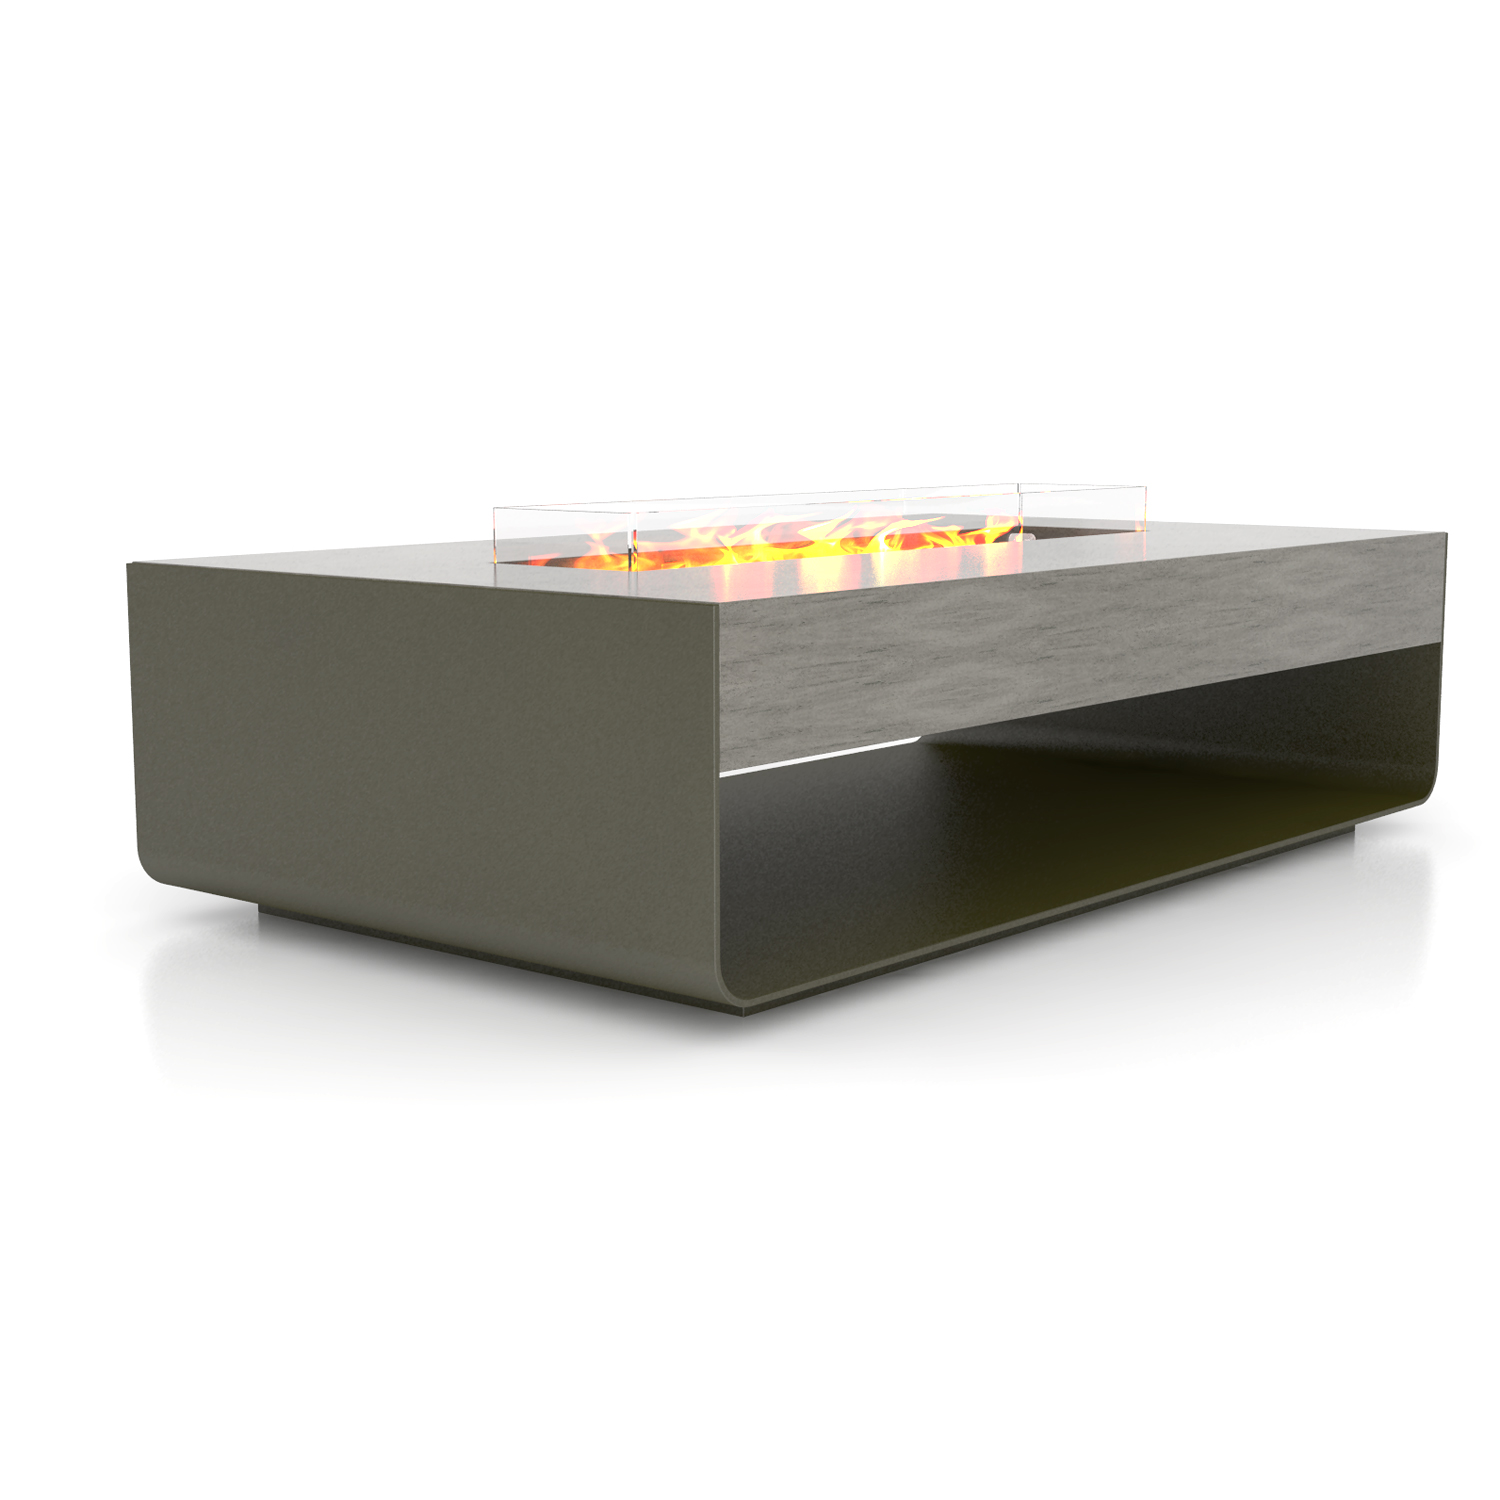 brown jordan fires stage fire pit coffee table eco smart